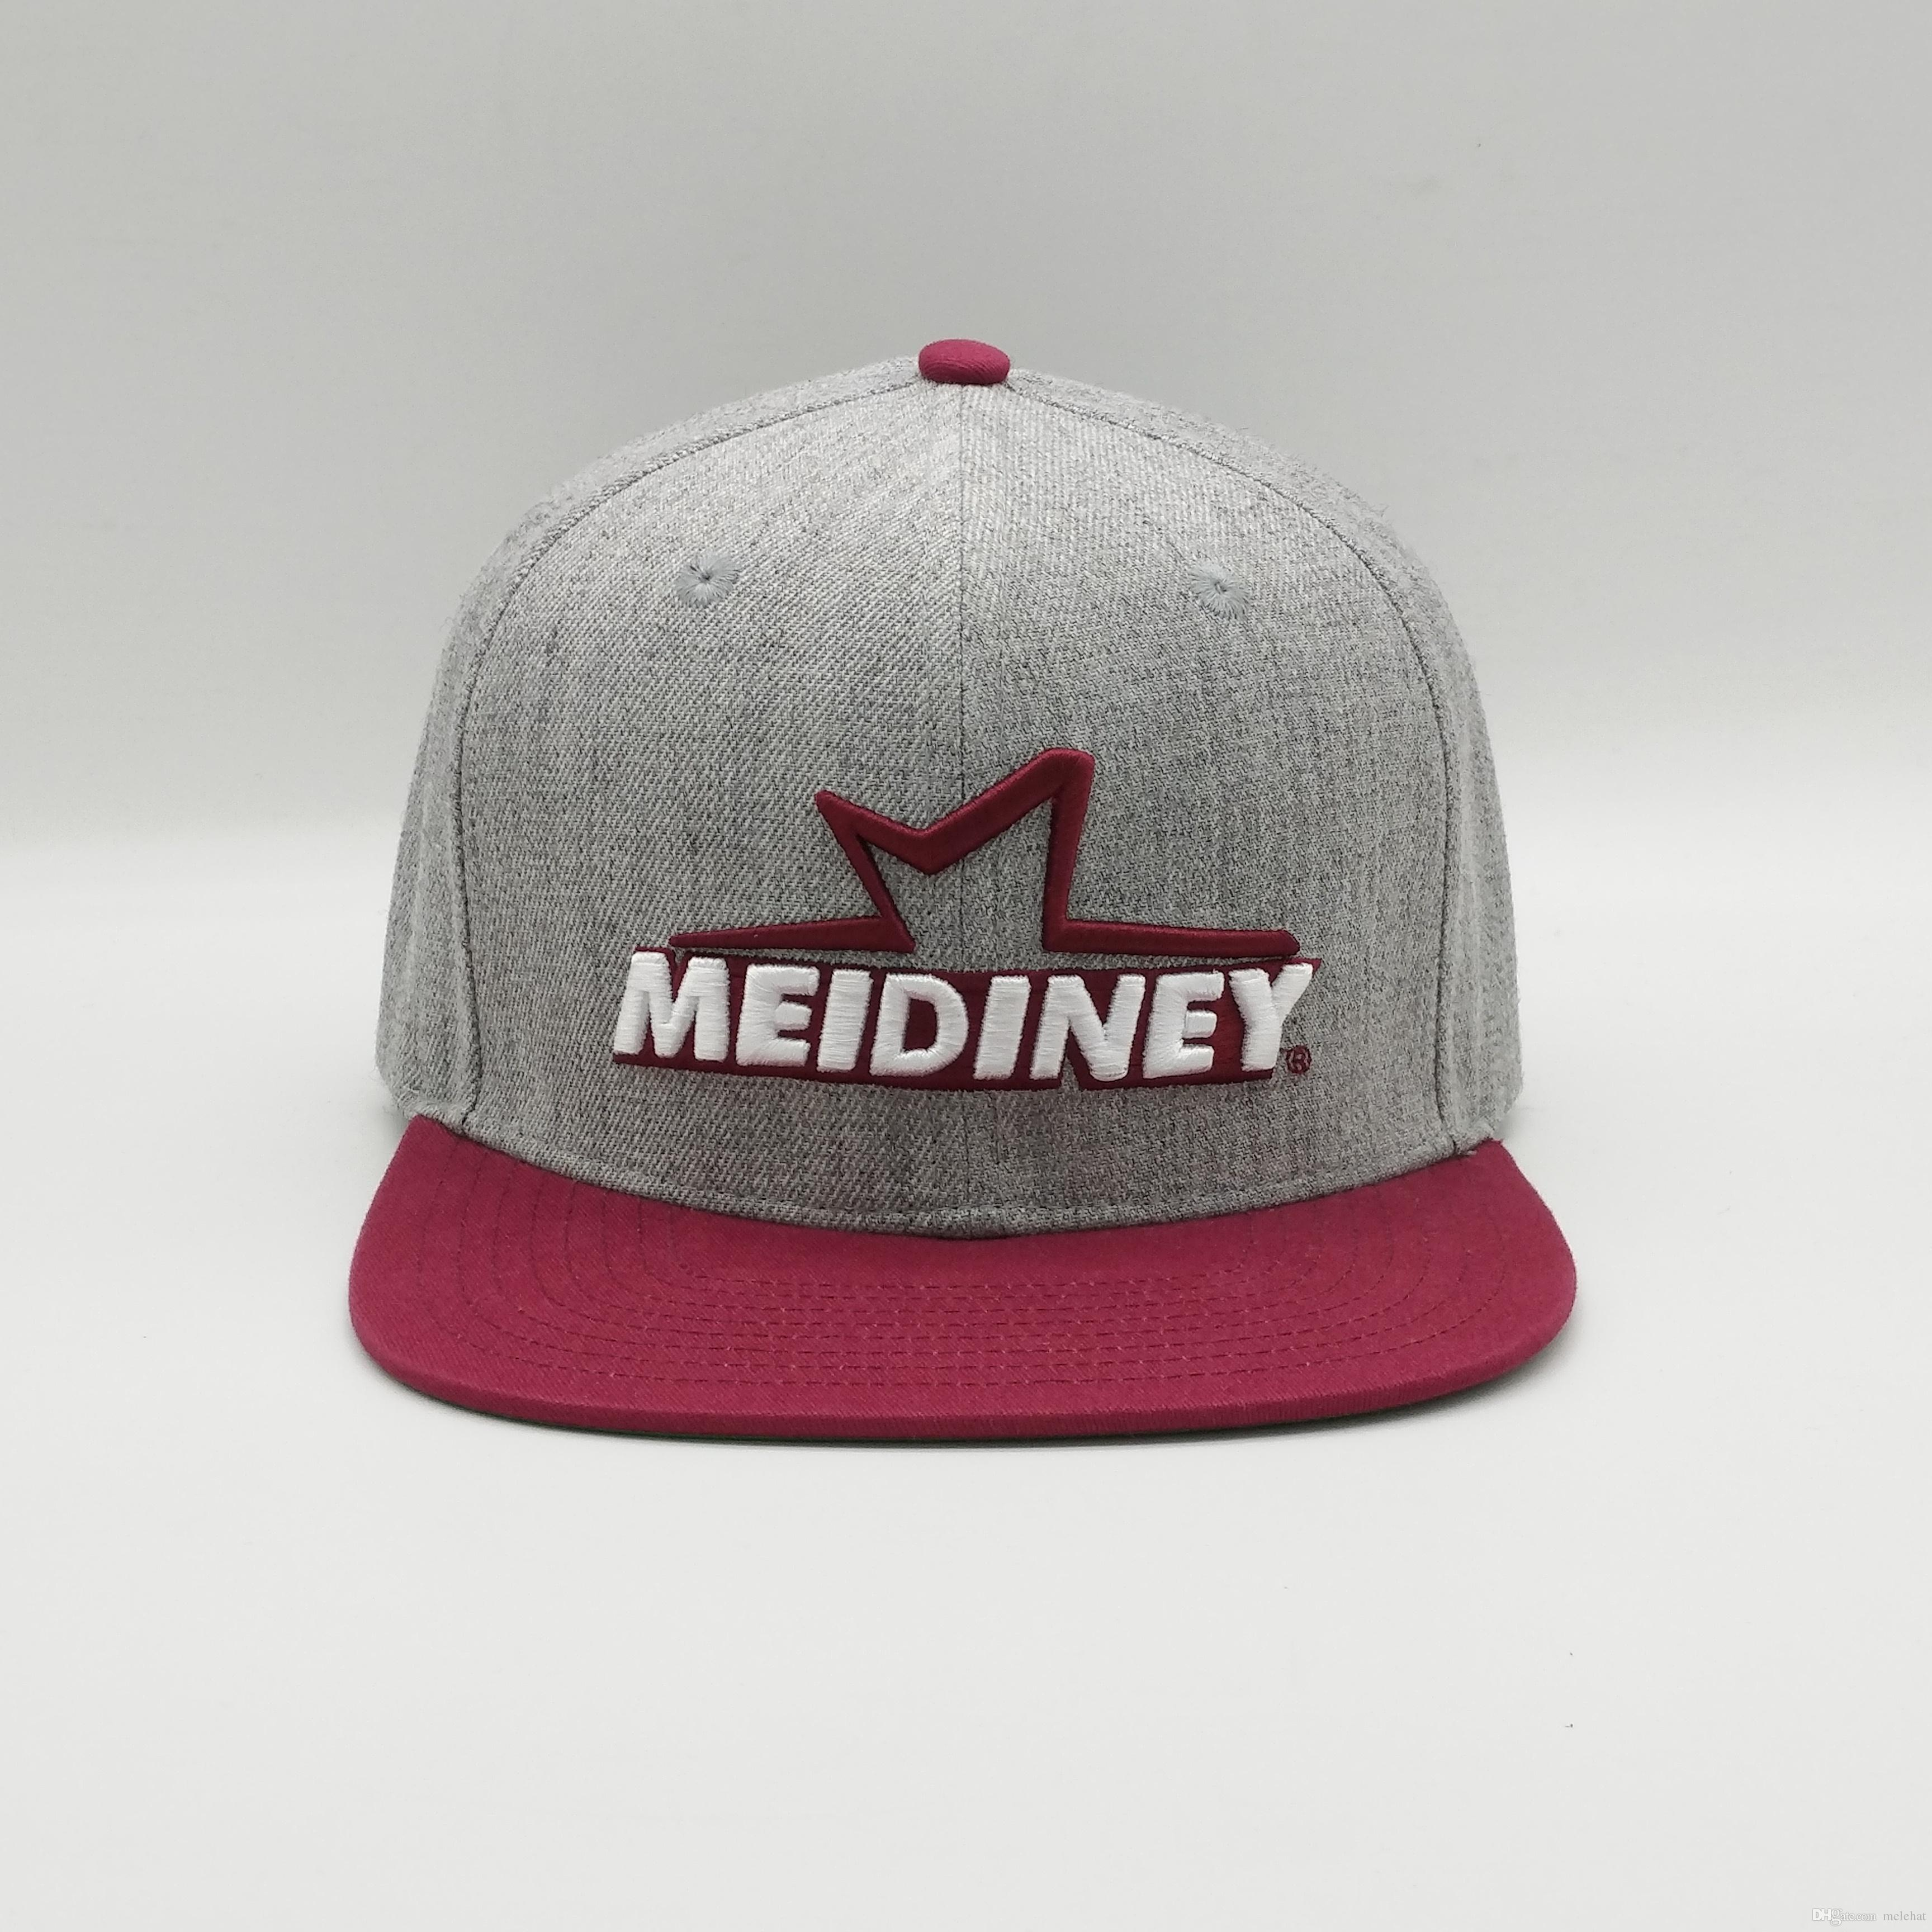 99216c4ee3a 2019 Meidiney Good Quality Unisex Green Underbrim Heather Grey Wool White 3D  Embroidery Snapback Caps Hat From Melehat